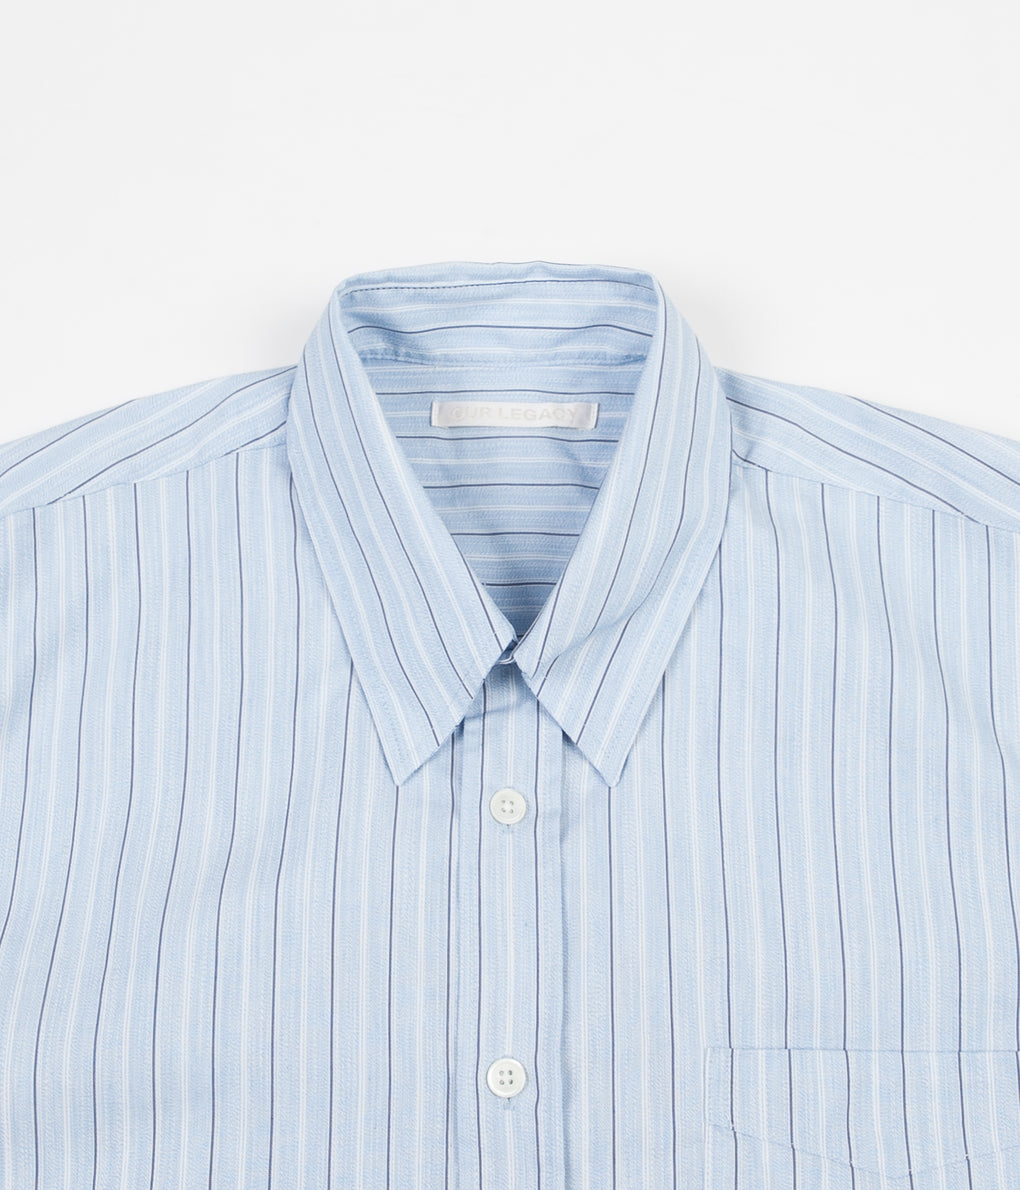 Our Legacy Less Borrowed Shirt - Vintage Irregular Stripe